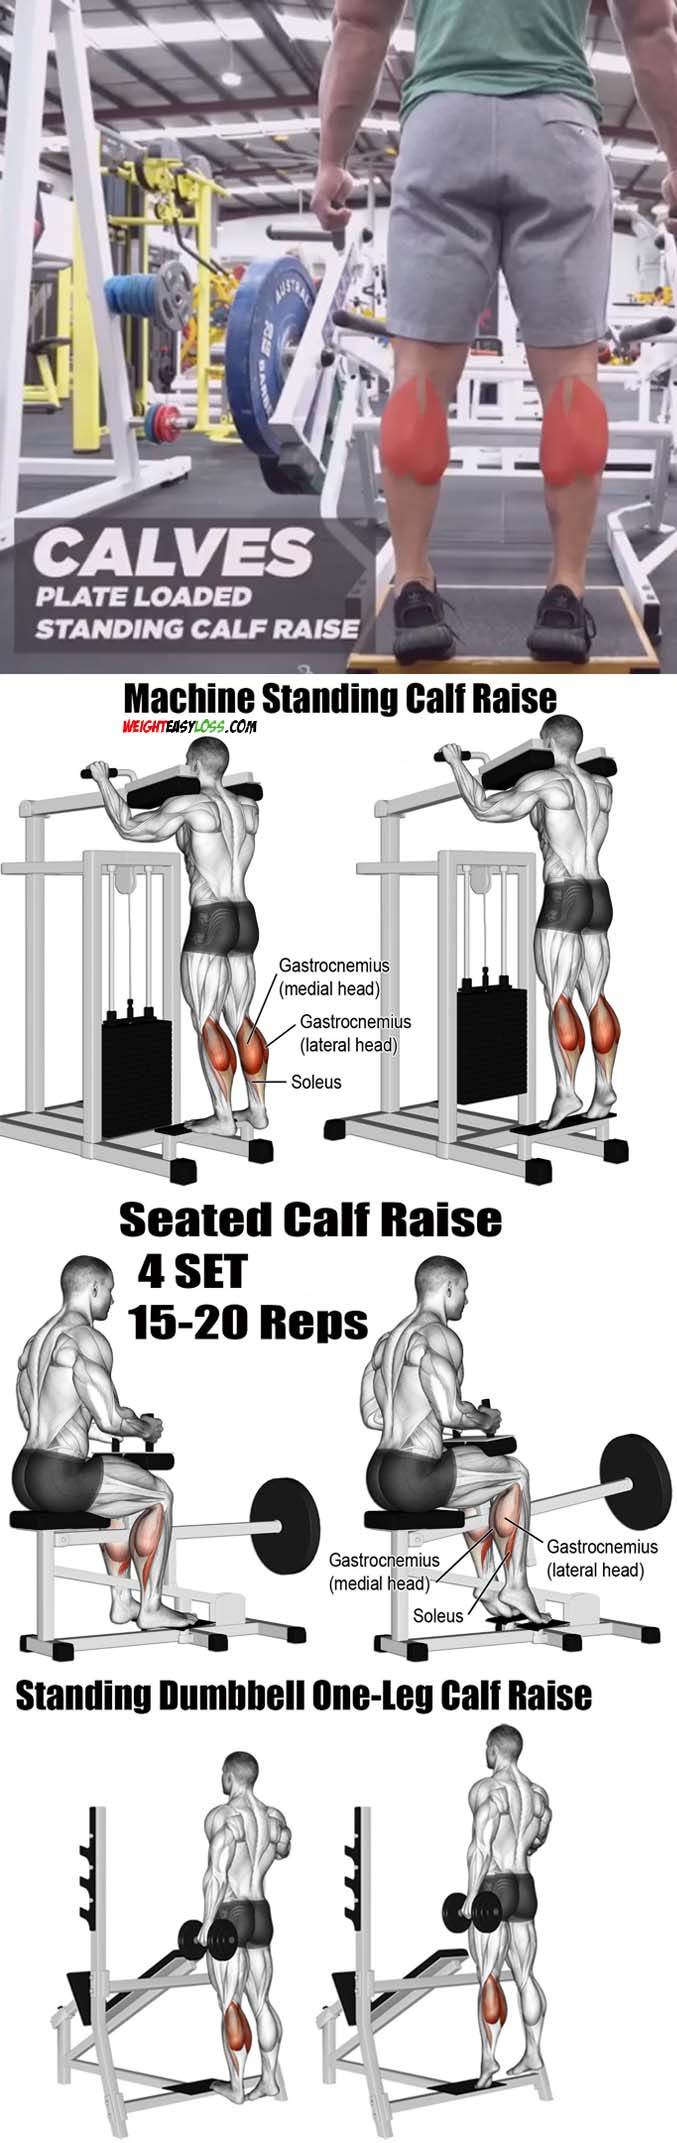 Calves Plate Loaded | Calves Exercises